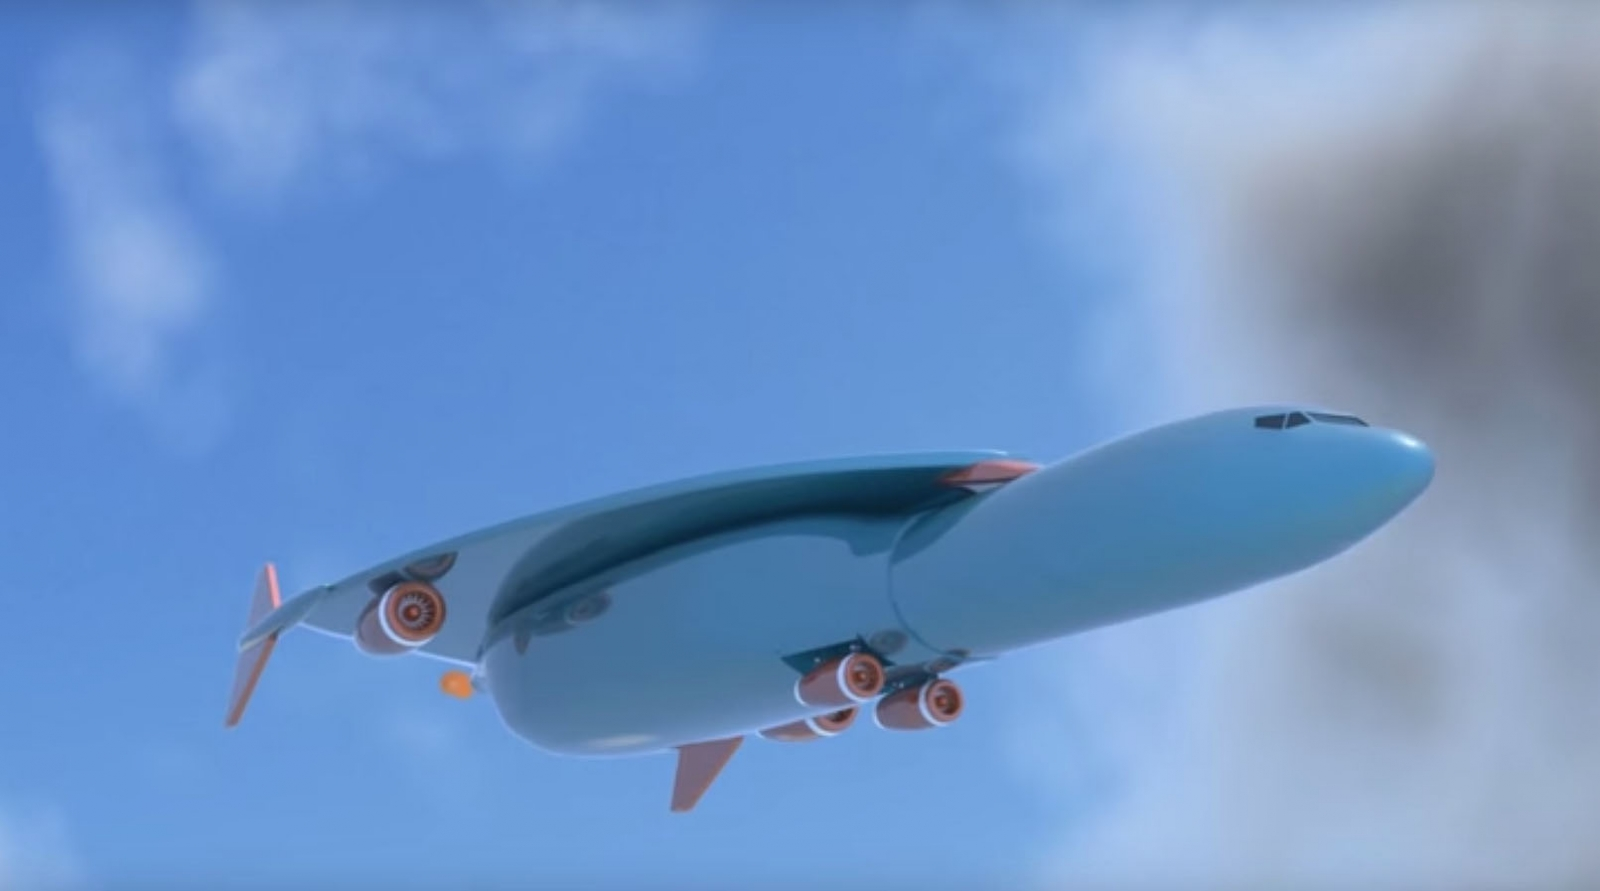 Artist's impression of Airbus hypersonic aircraft